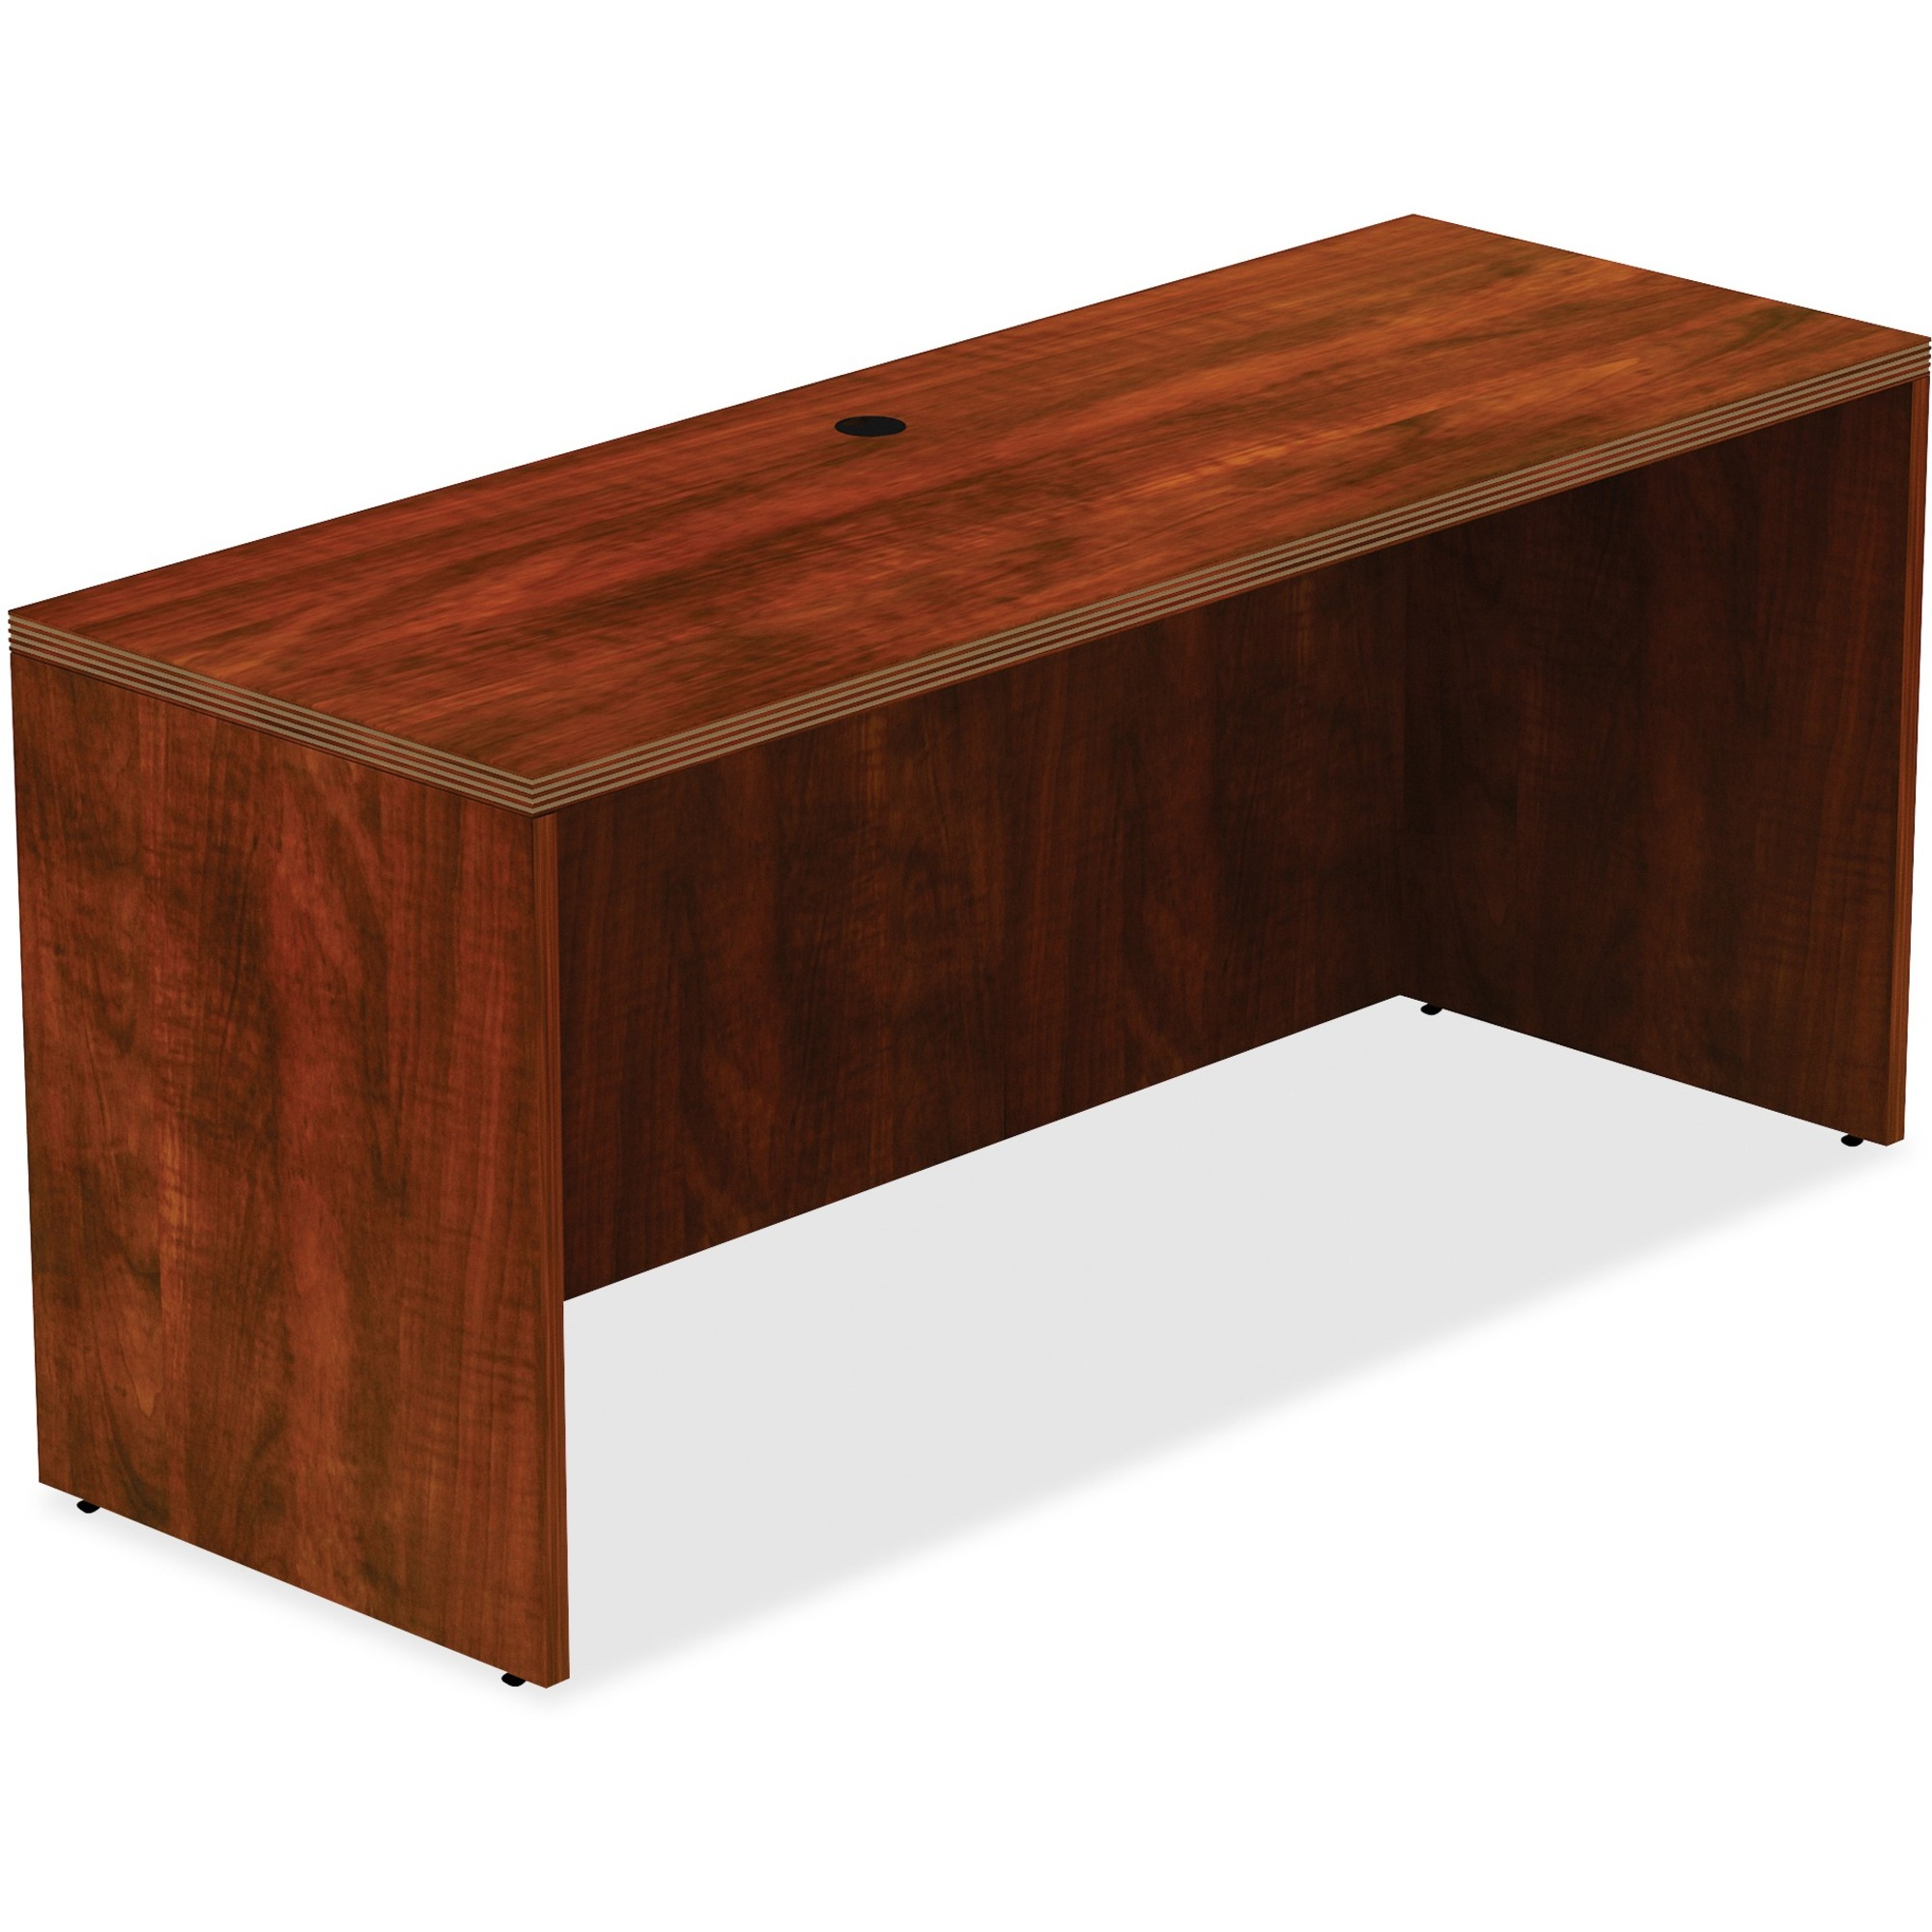 "Lorell Chateau Credenza - Top, 60"" x 24"" x 30"" - Reeded Edge - Finish: Cherry Laminate - Madill ..."